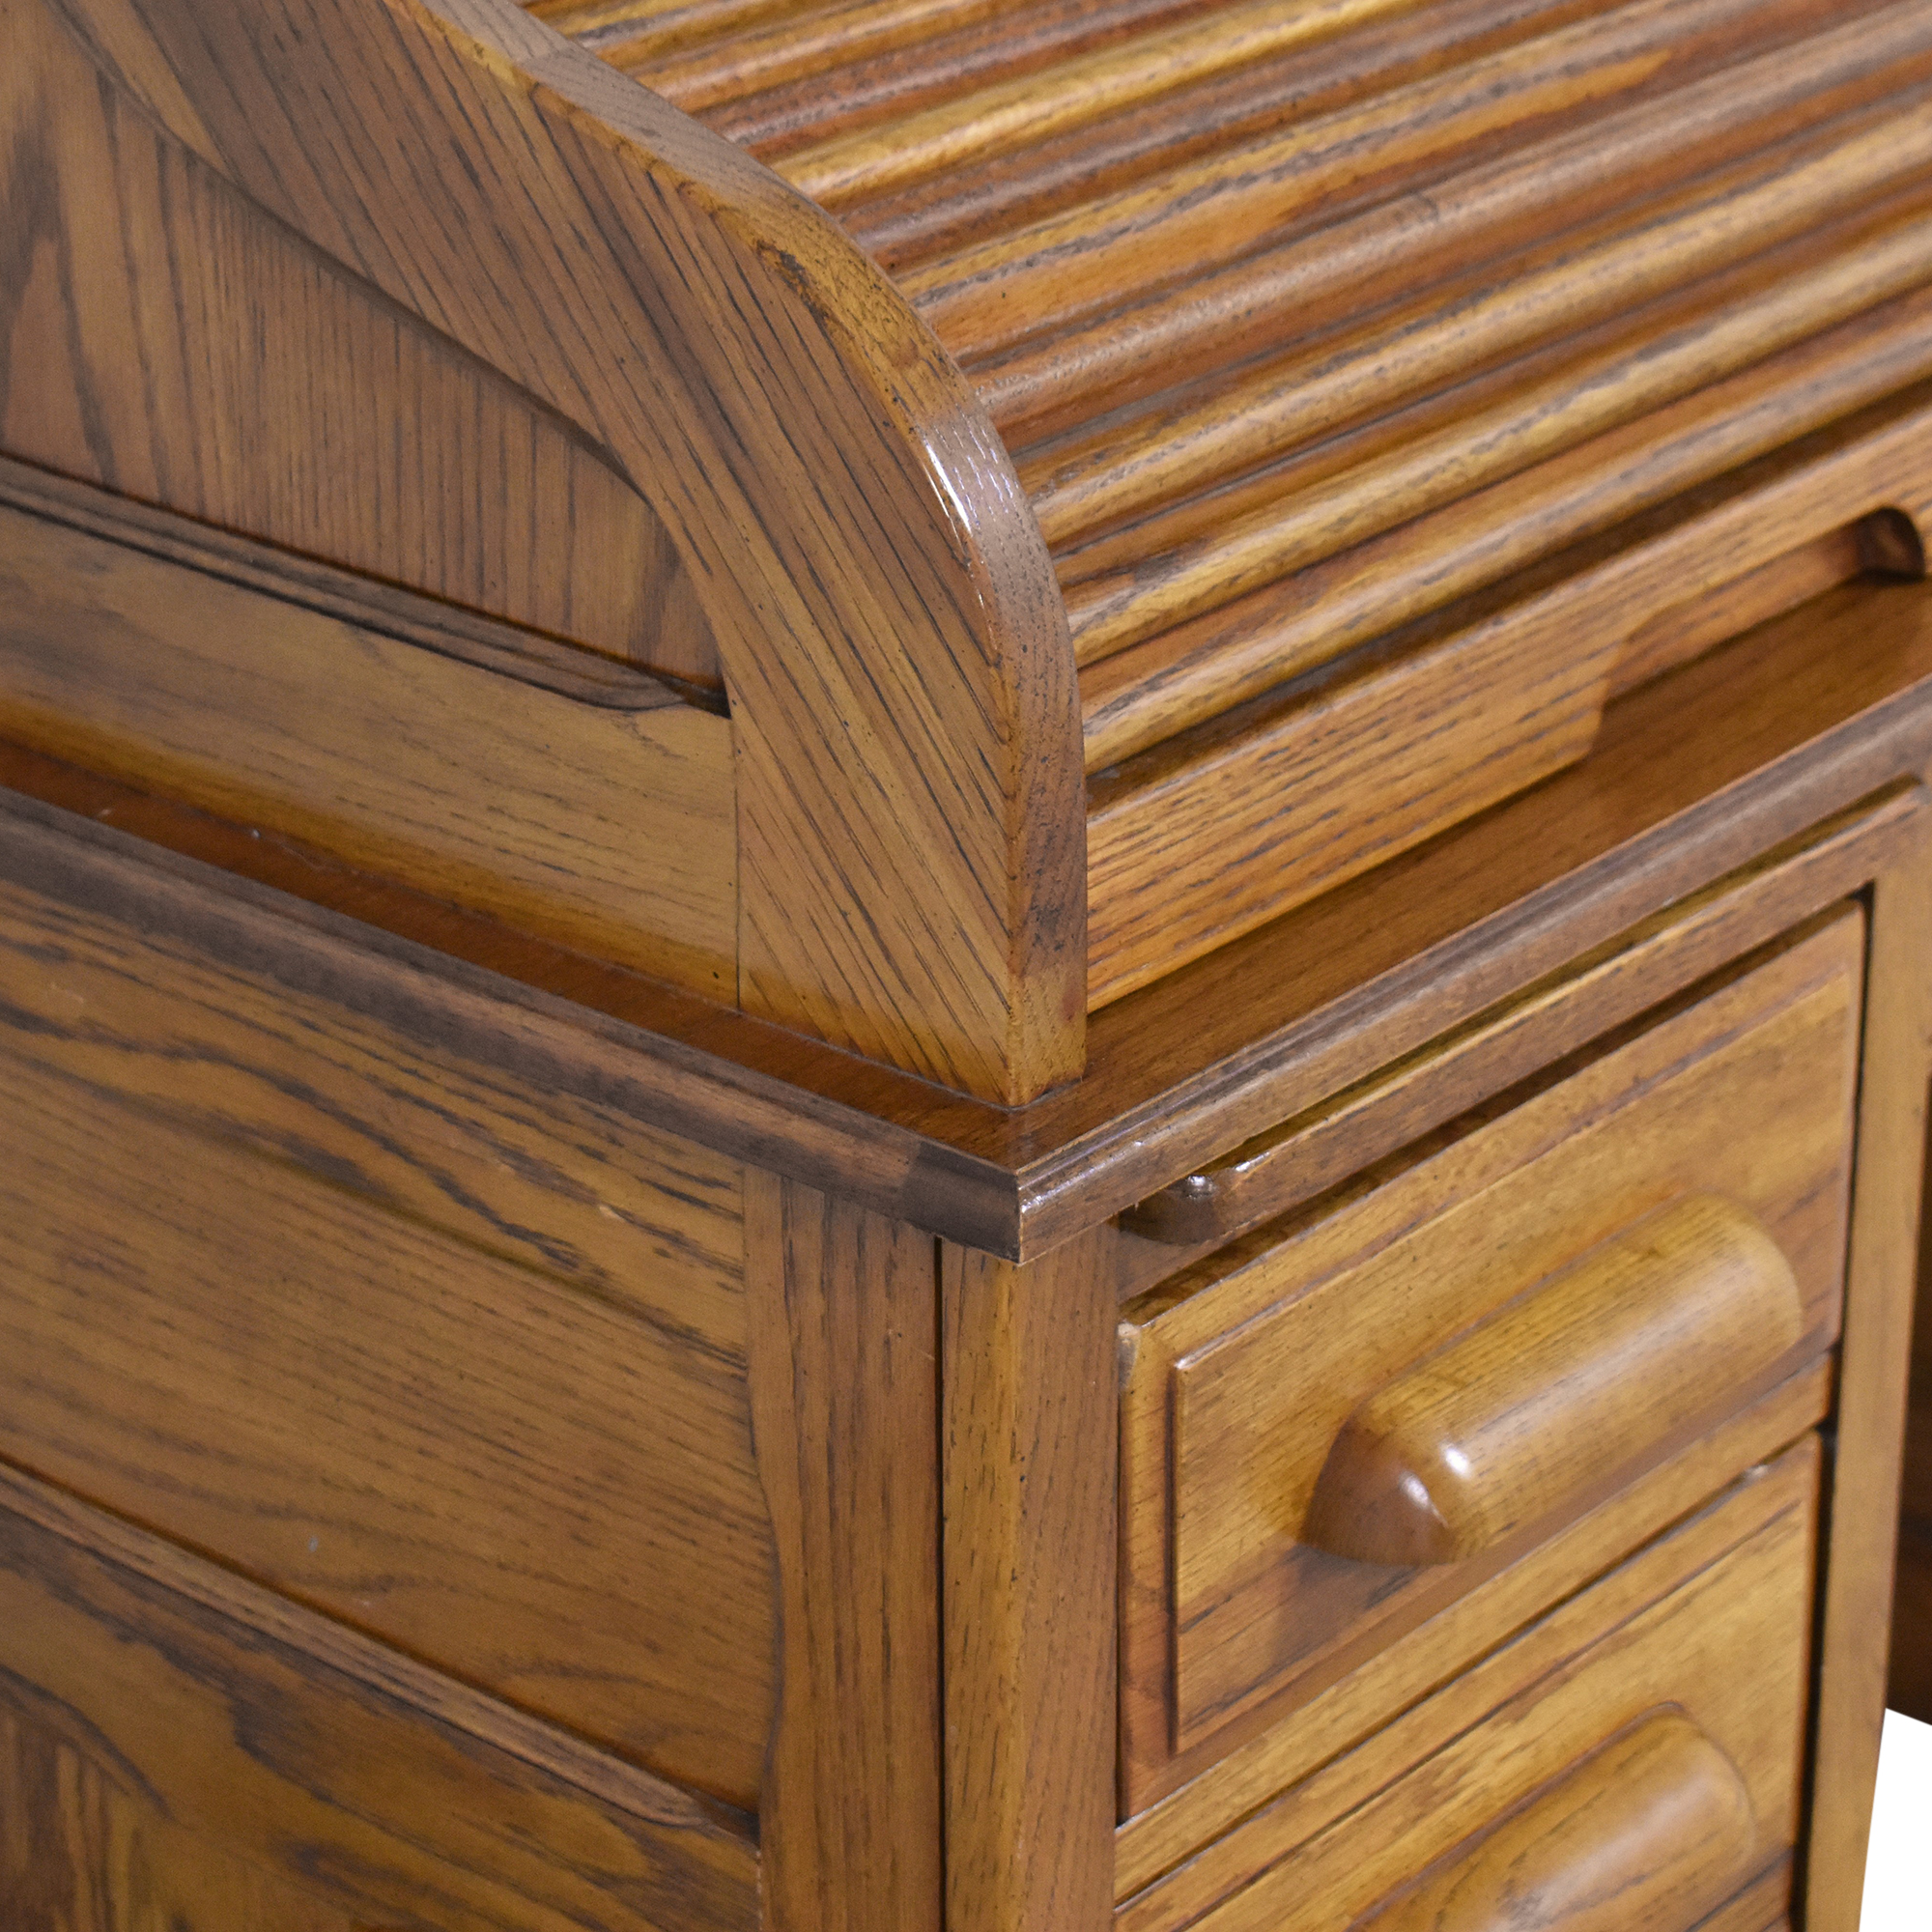 Mount Airy National Mount Airy Roll Top Desk price